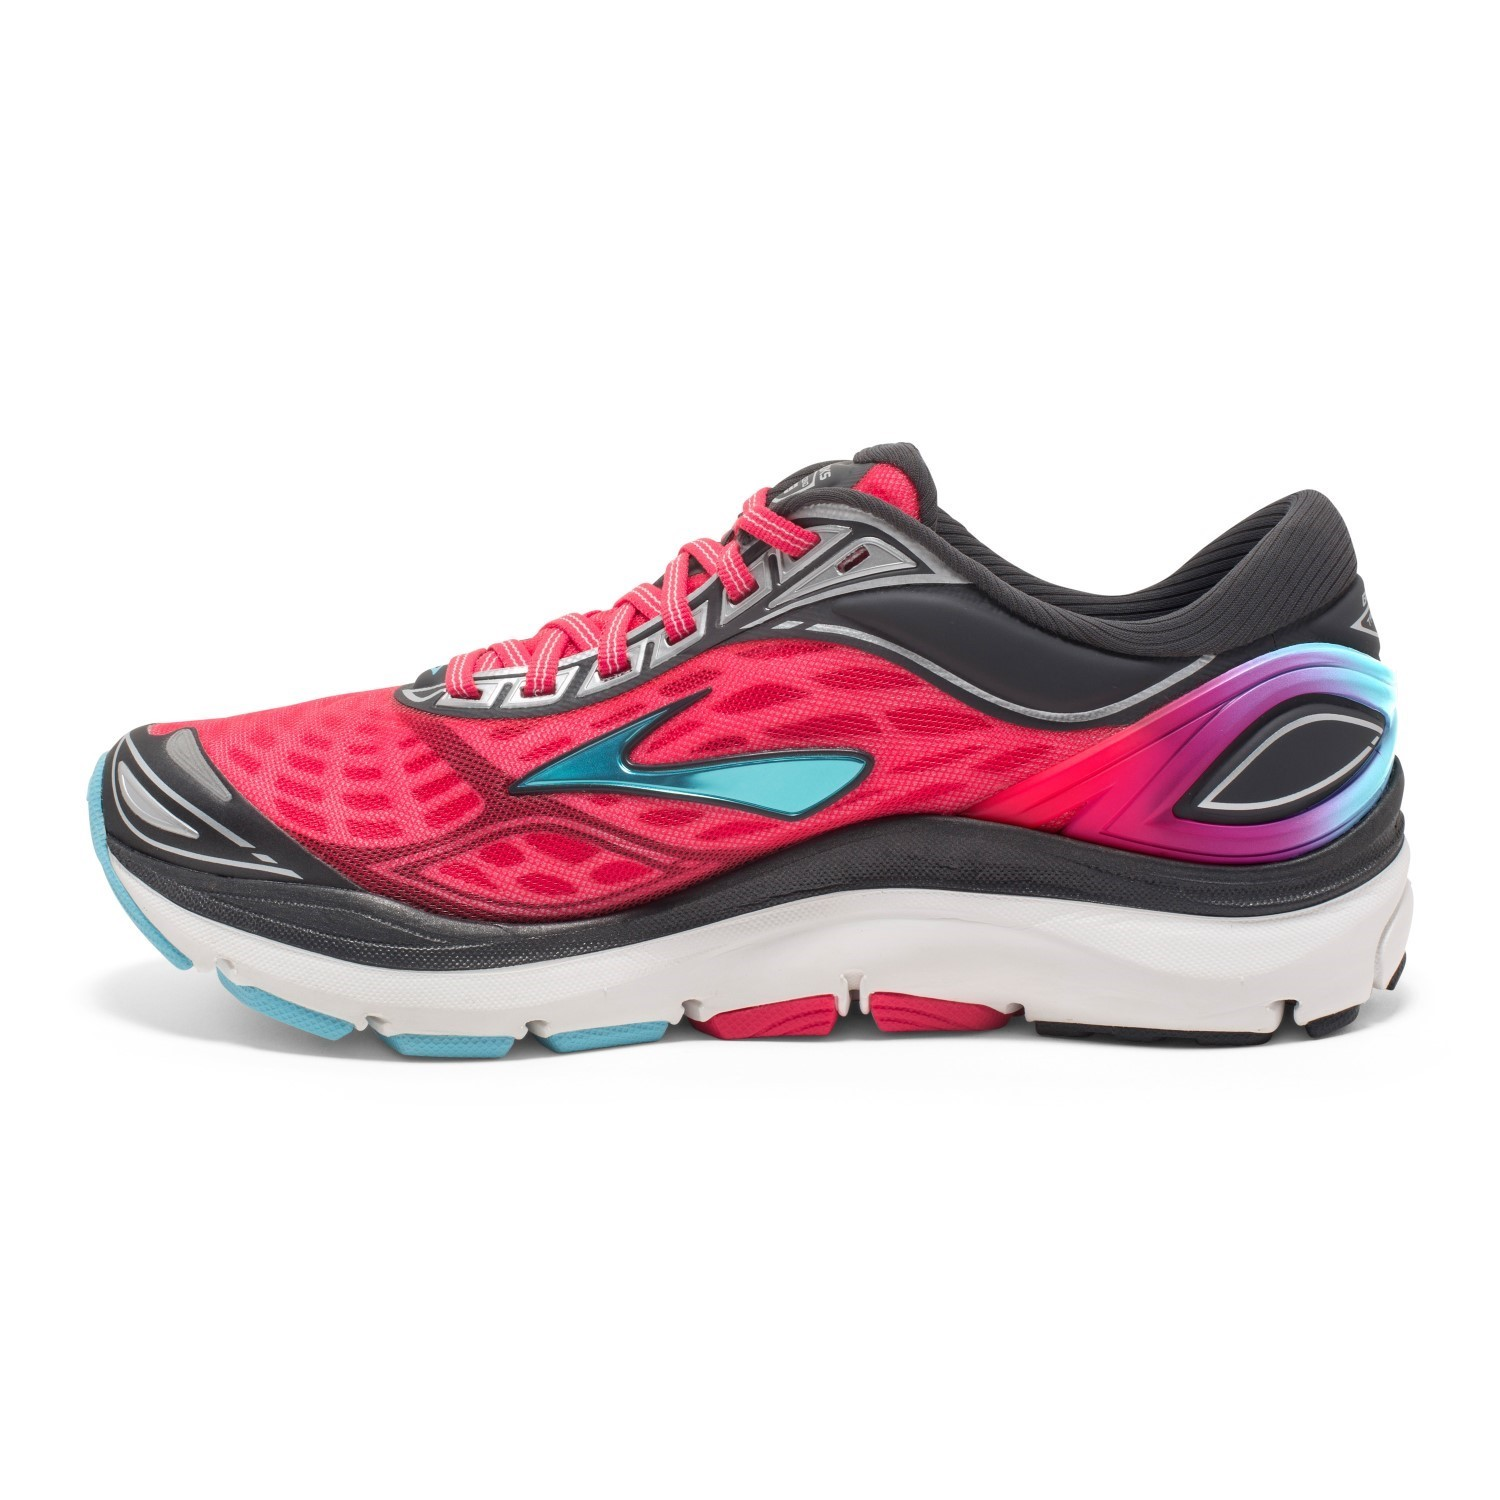 11f7bc084cd28 Brooks Transcend 3 - Womens Running Shoes - Diva Pink Blue Fish ...